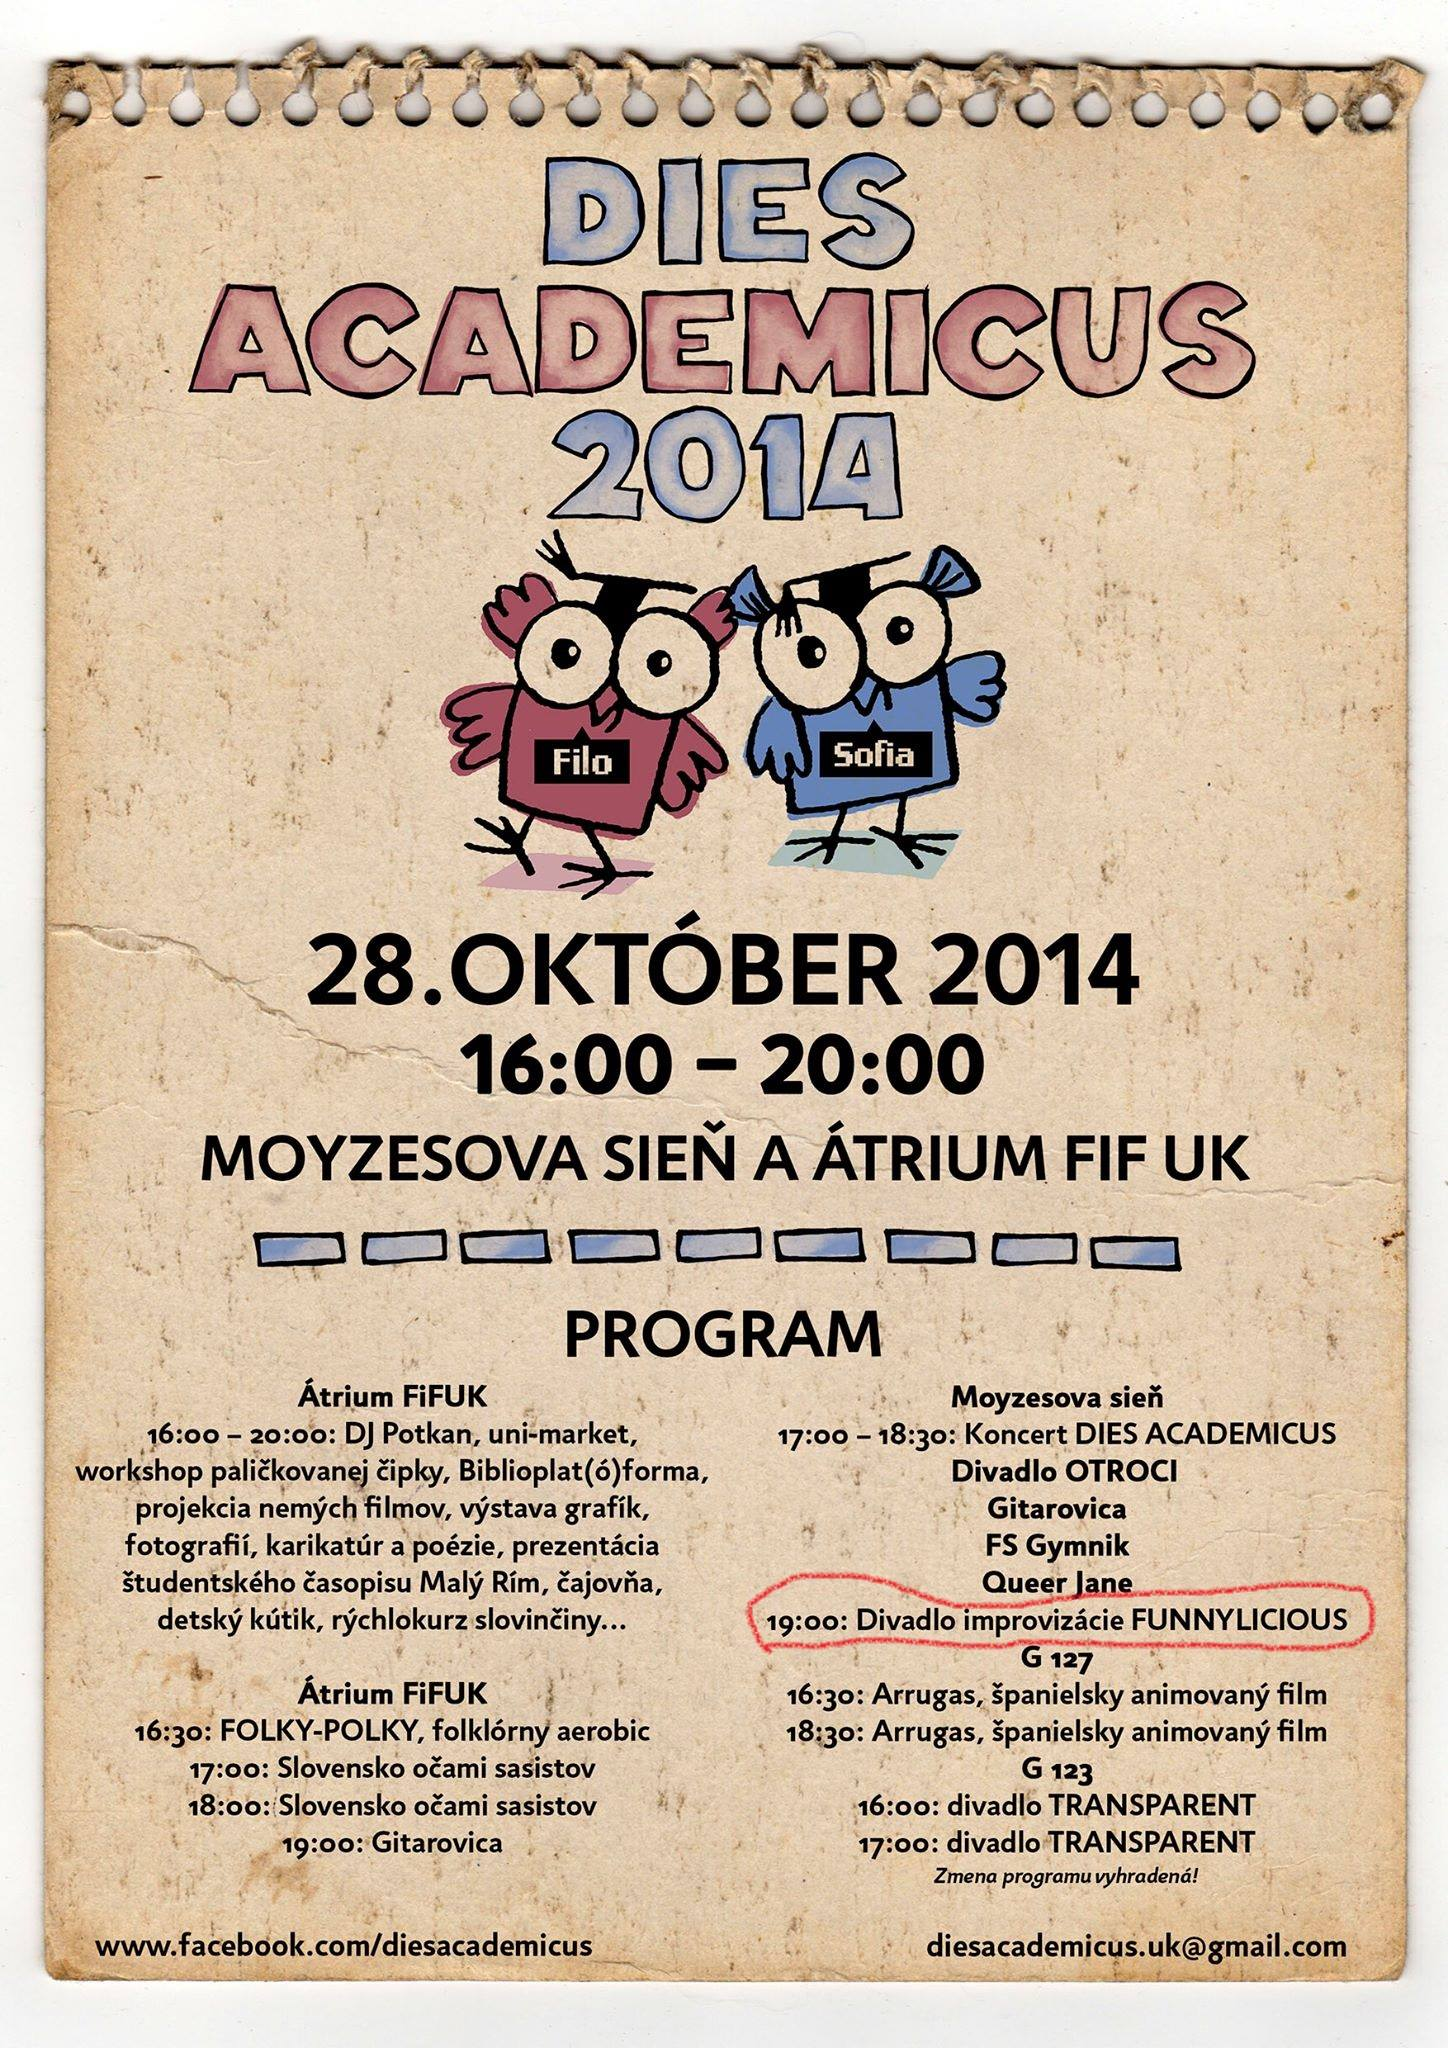 Academicus 2014 with Funnylicious